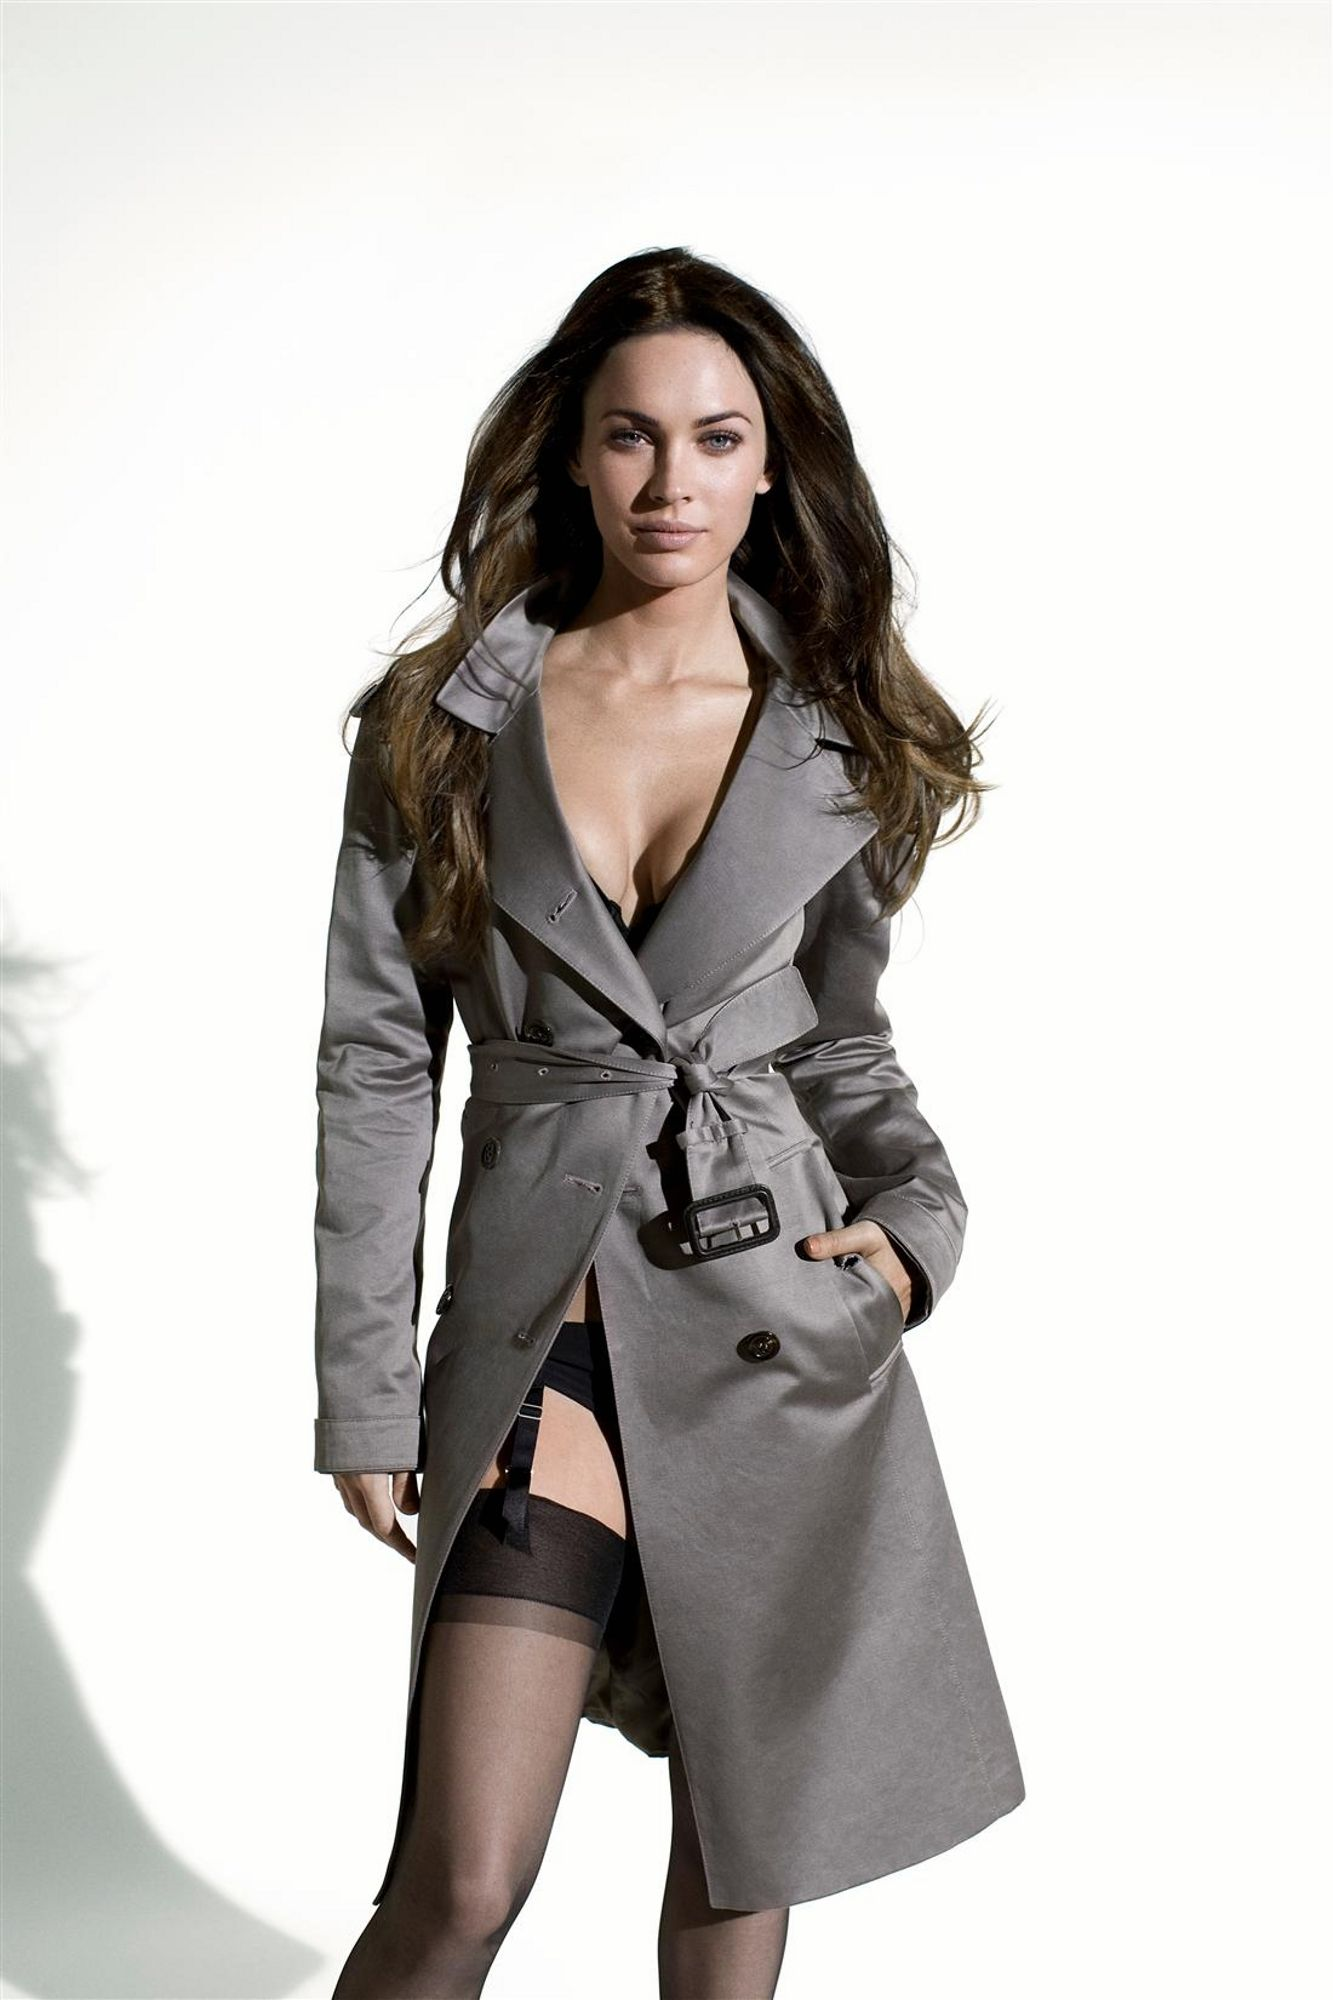 Megan Fox, photograph by GREG WILLIAMS (ESQUIRE magazine ...